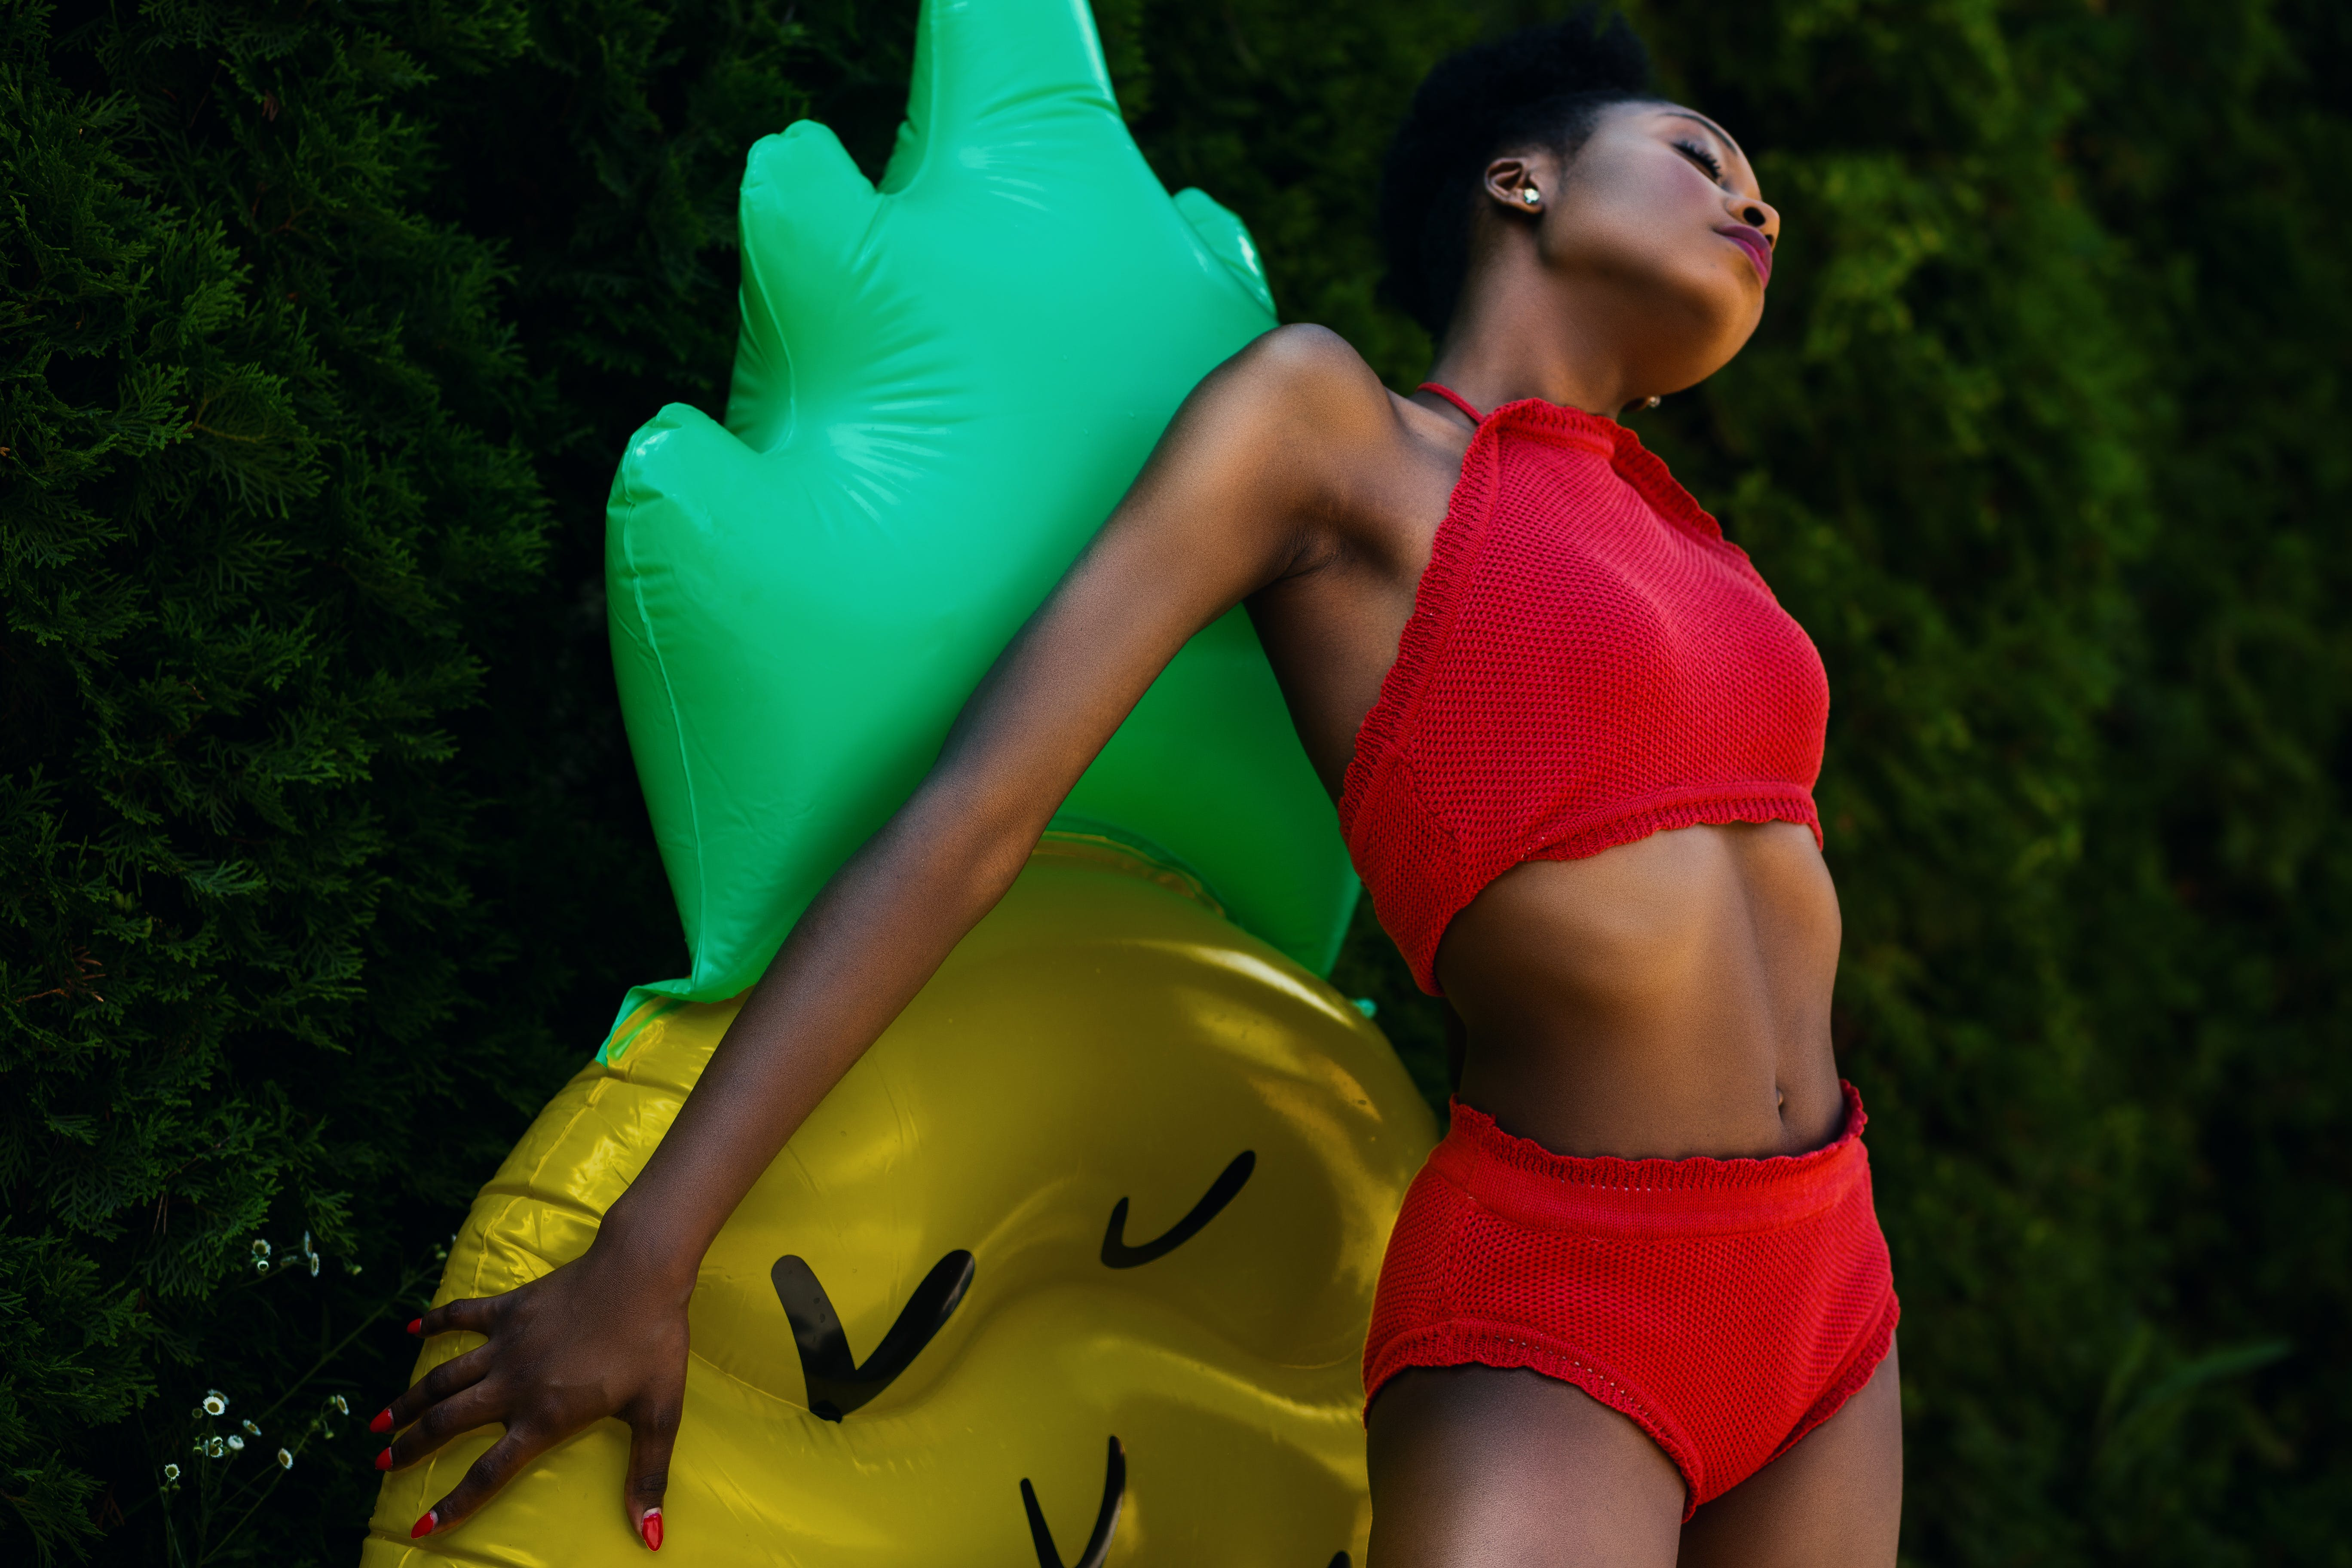 Woman Wearing Red Top and Bottoms Leaning on Yellow and Green Inflatable Standee